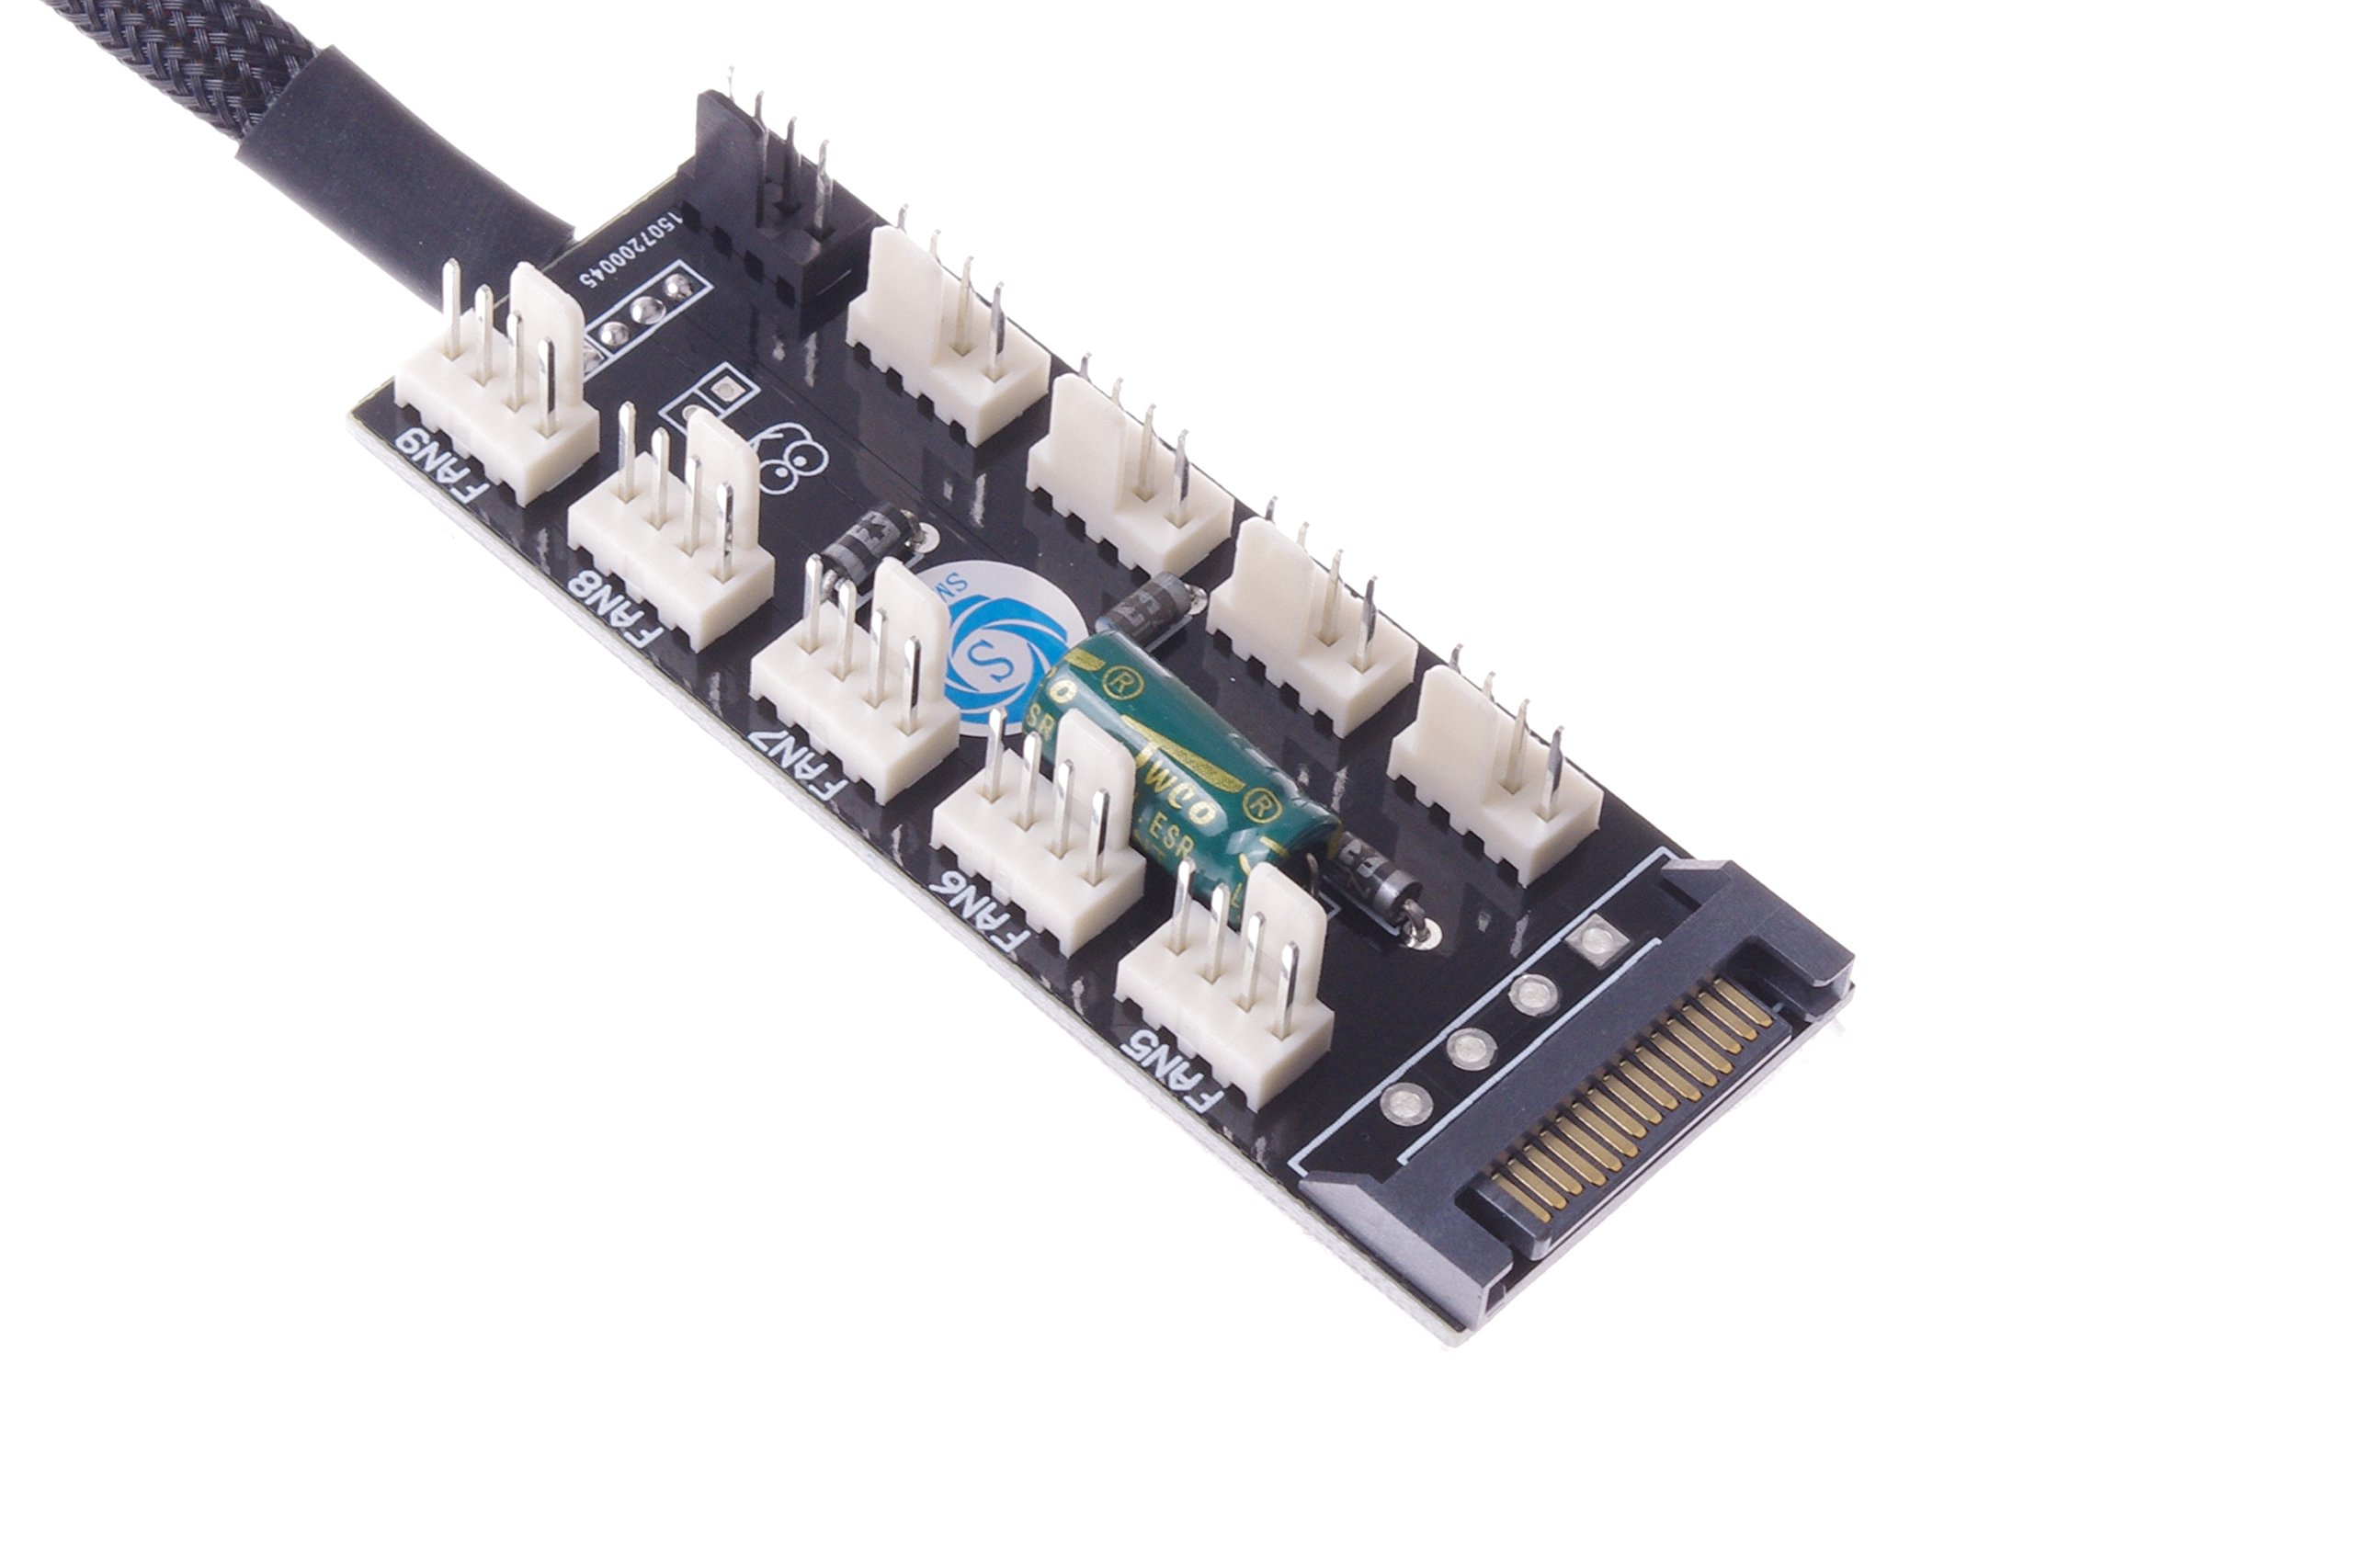 SMAKNÂ PC FAN HUB temperature-controlled supports 10 Ports 12V 3pin/4pin Fan Cable SATA-port Power by SMAKN (Image #3)